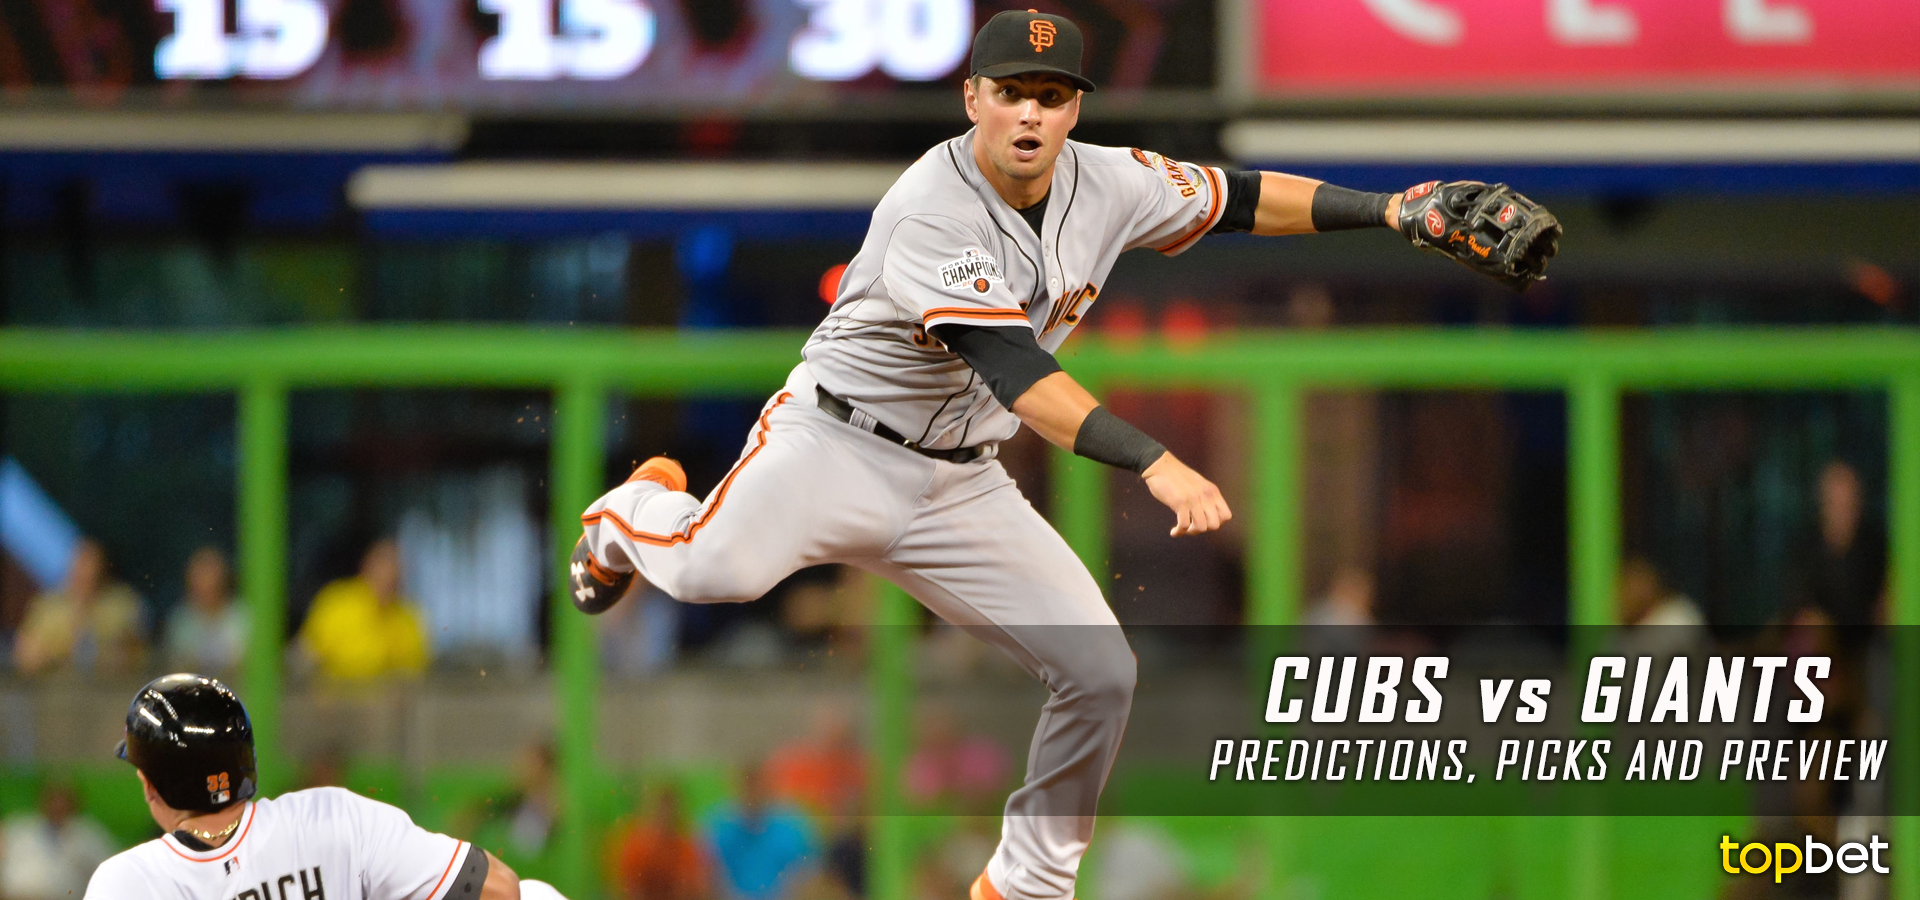 Cubs vs Giants 2016 NLDS Game 4 Predictions, Picks & Preview